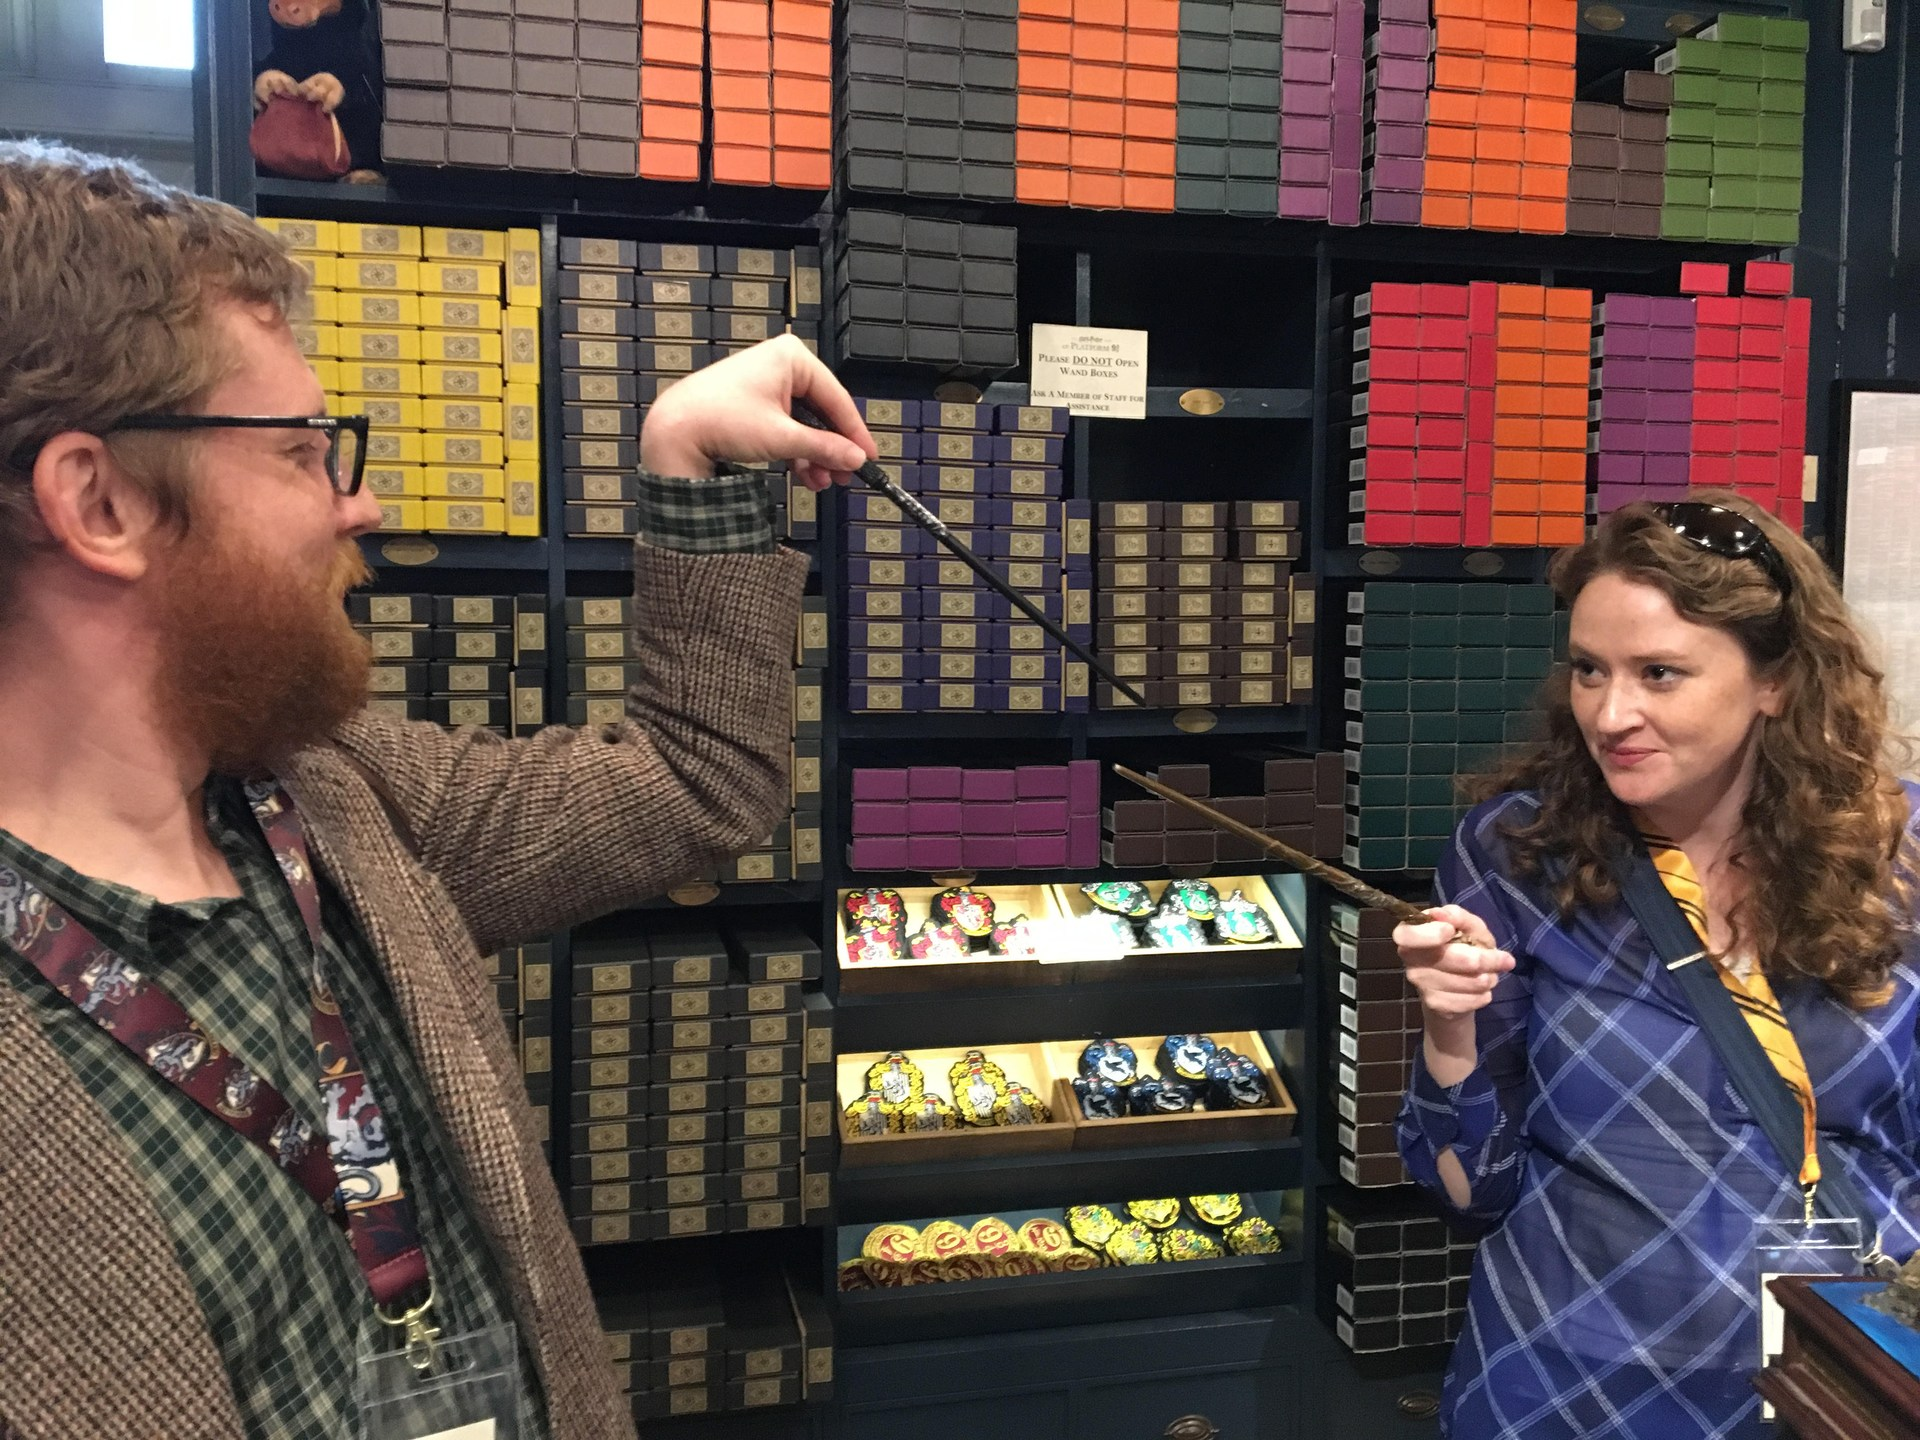 Dueling with my brother at Ollivander's wand shop!